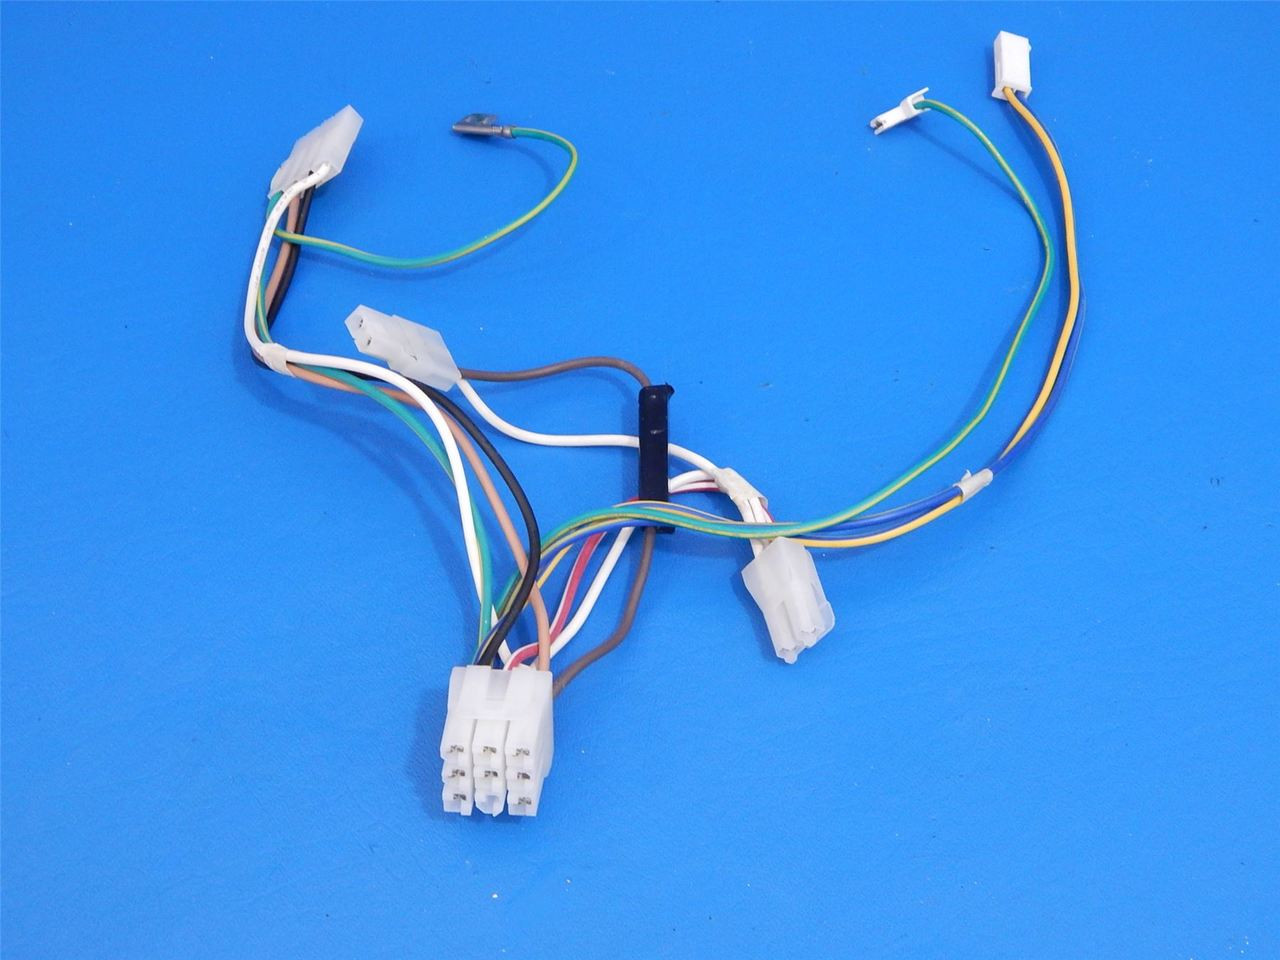 whirlpool bottom mount refrigerator wrf560smyw02 freezer wire harness w10487766 ice cold beer appliance parts [ 1280 x 960 Pixel ]